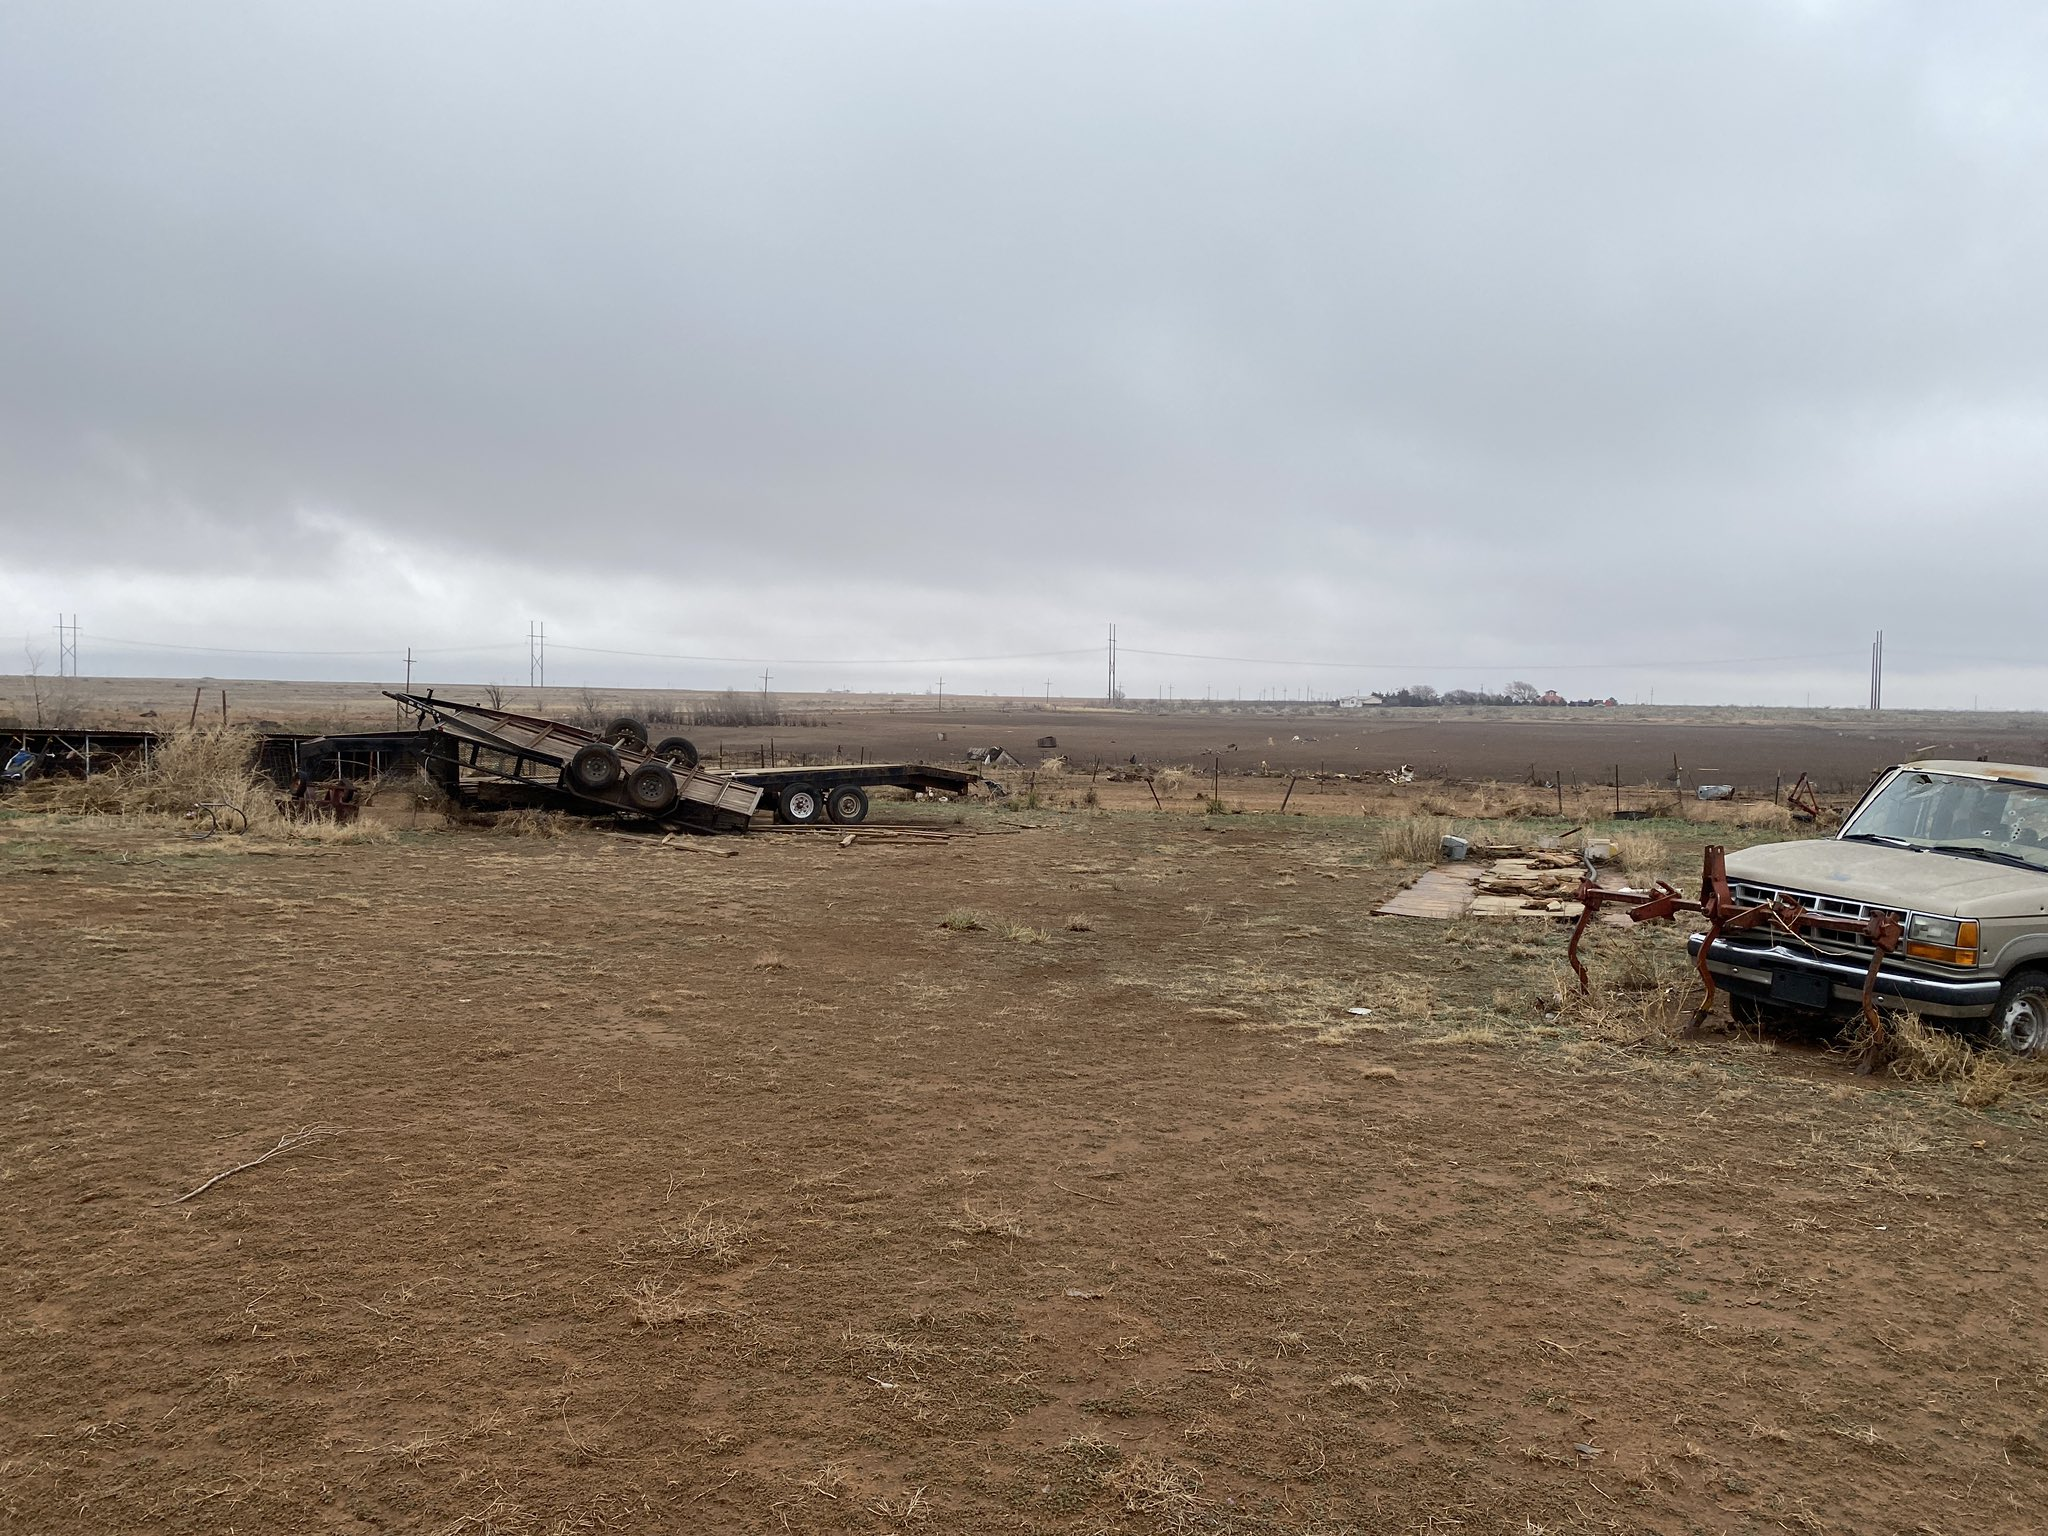 Tornado damage incurred northwest of Shallowater on March 12th. The picture is courtesy ofLarry Rodriques.